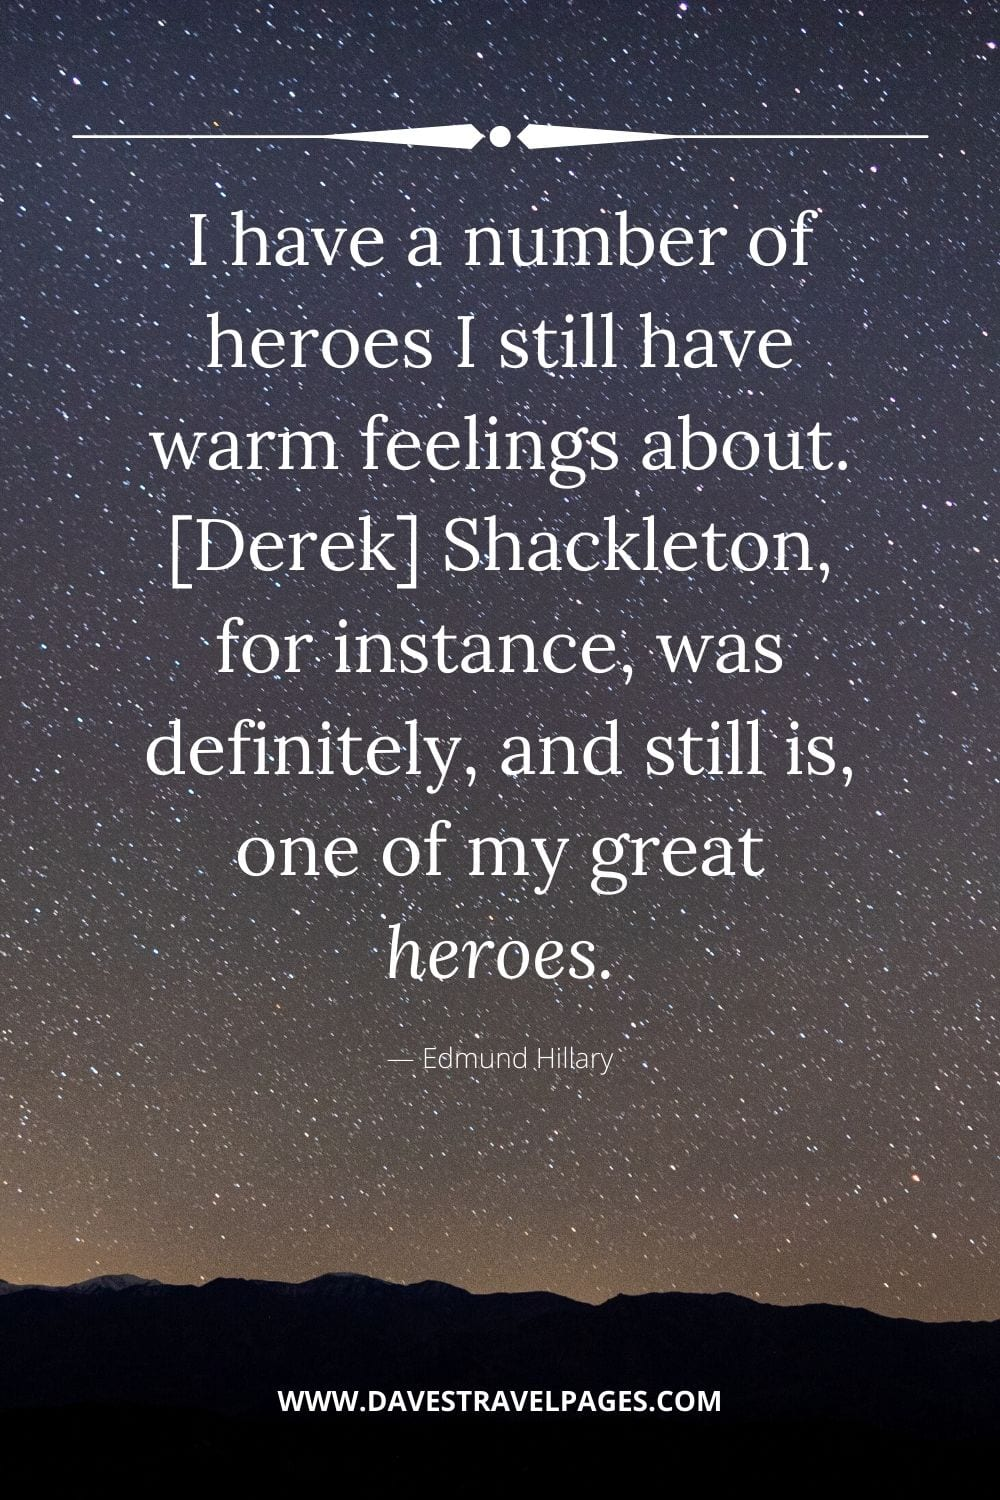 """I have a number of heroes I still have warm feelings about. [Derek] Shackleton, for instance, was definitely, and still is, one of my great heroes."" - Edmund Hillary"